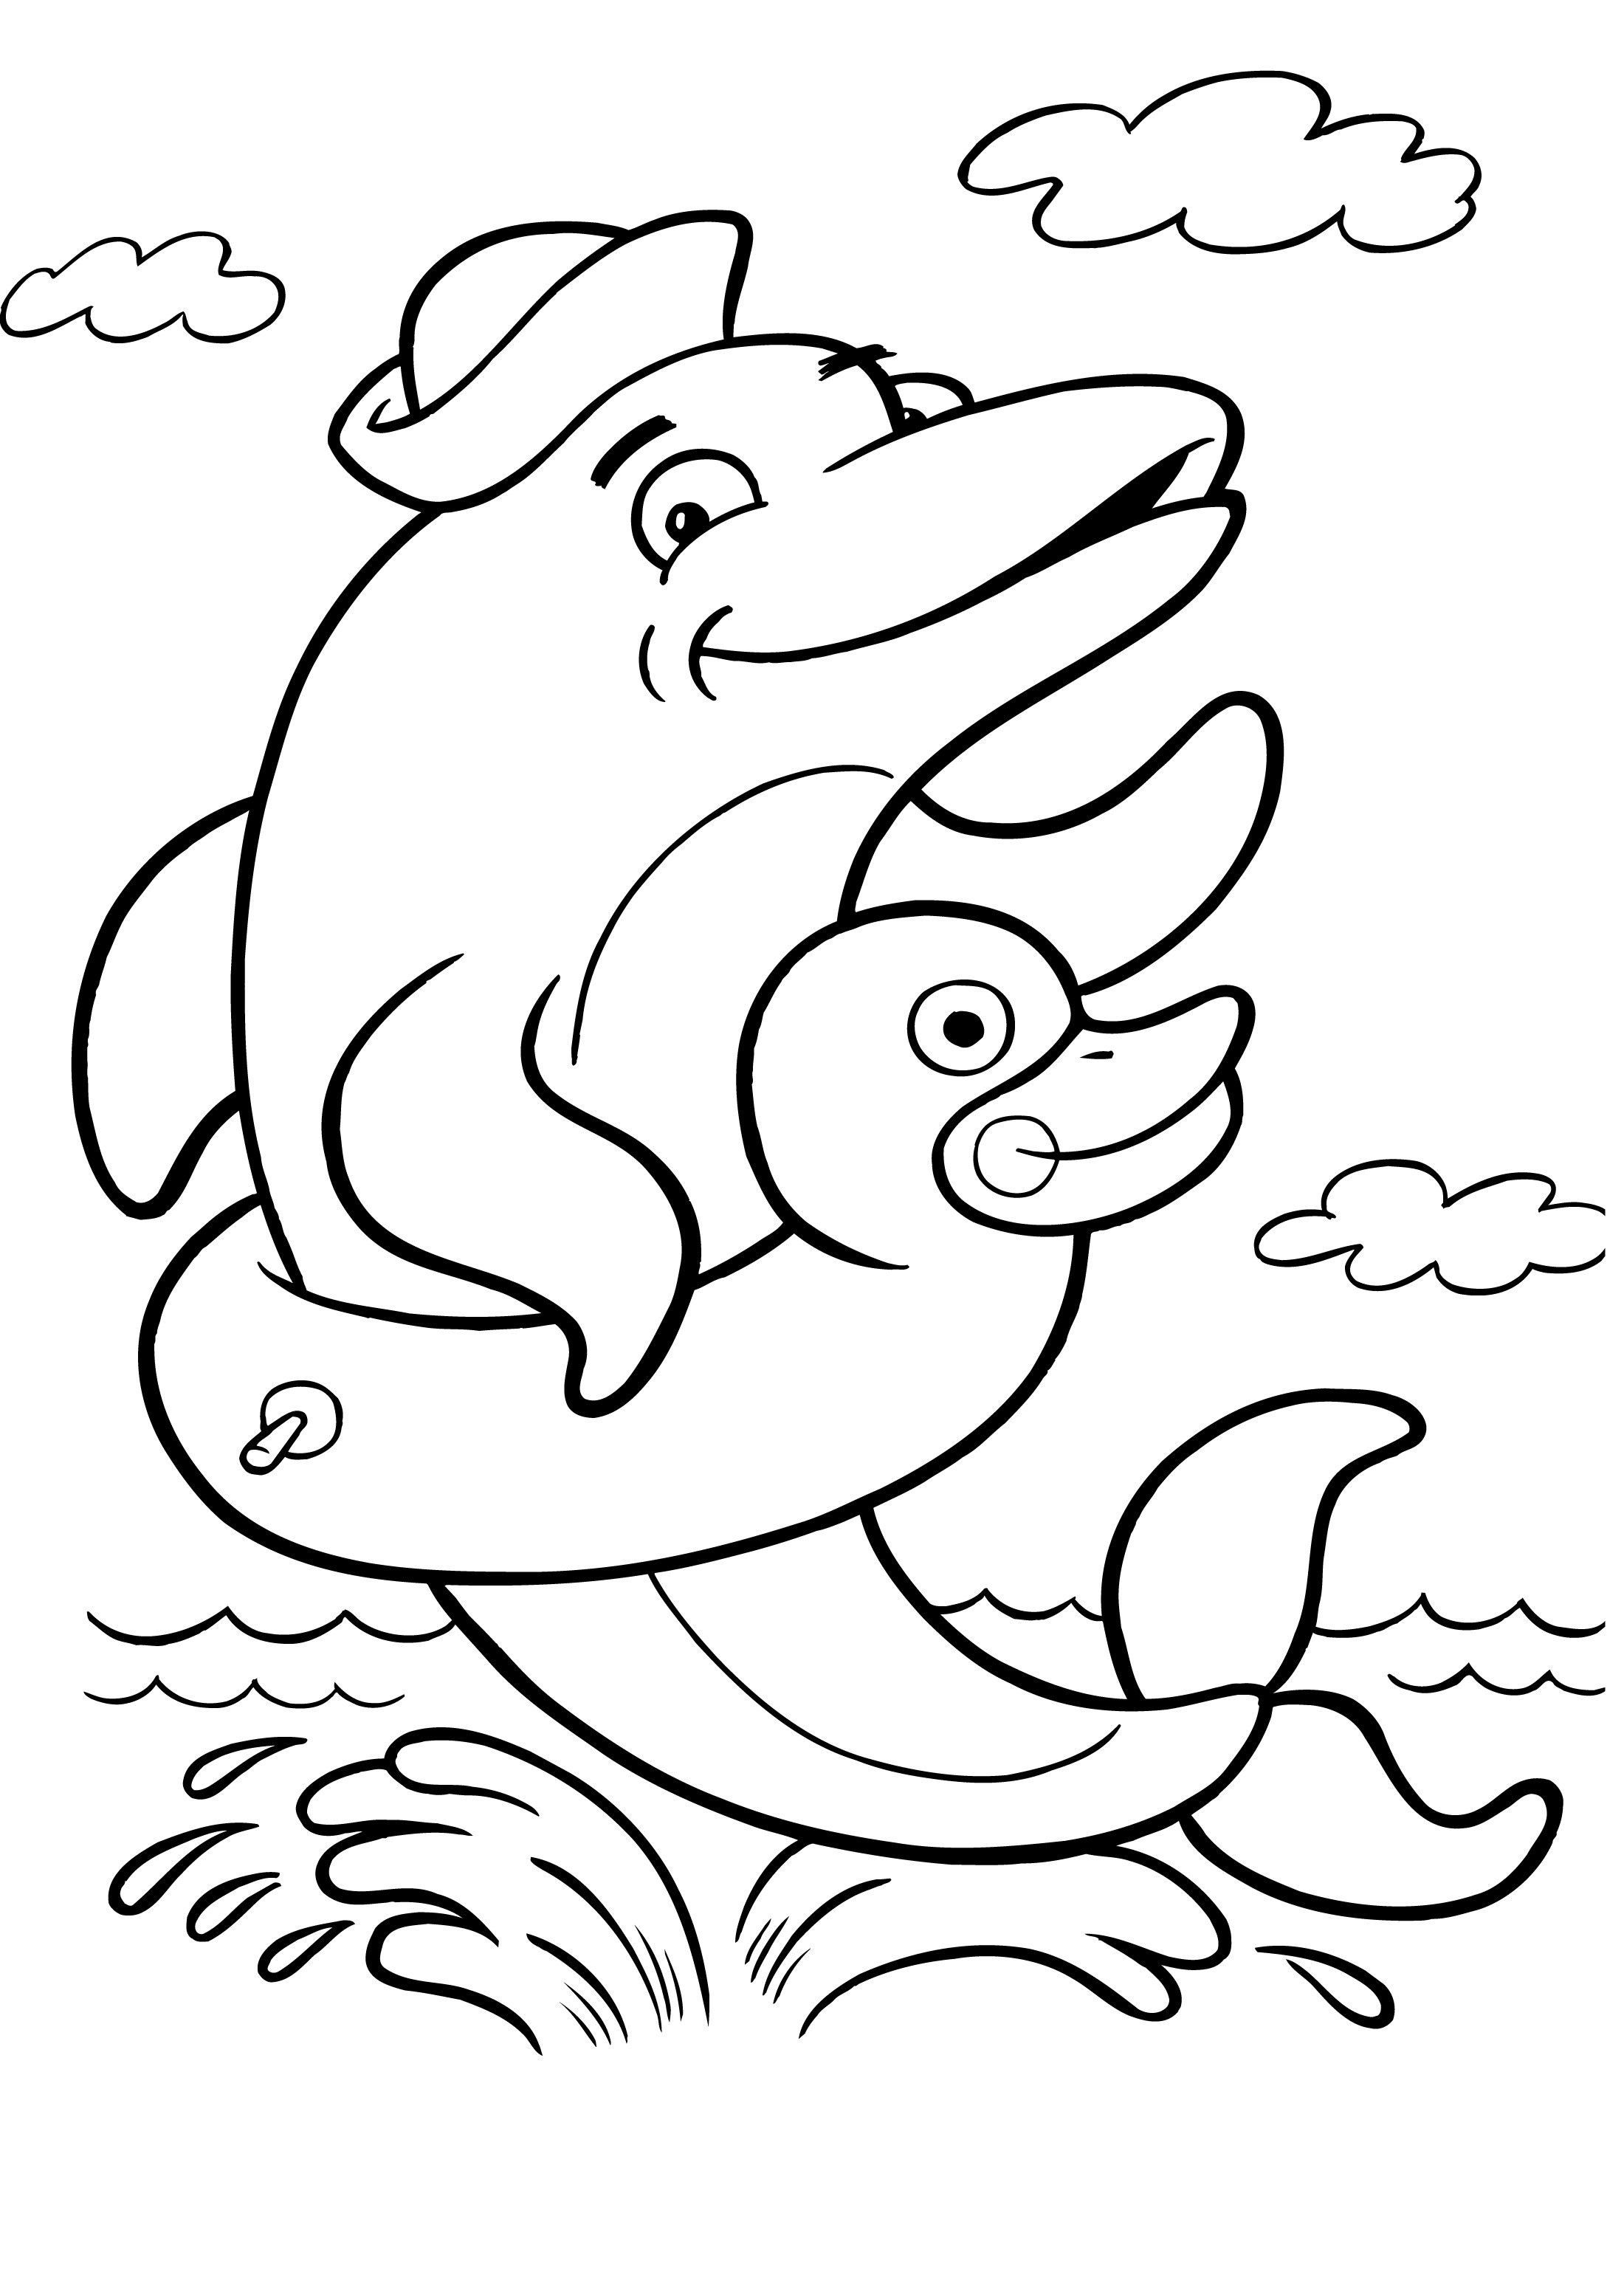 dolphins to color and print dolphin coloring pages printable that are rare roy blog and dolphins print to color